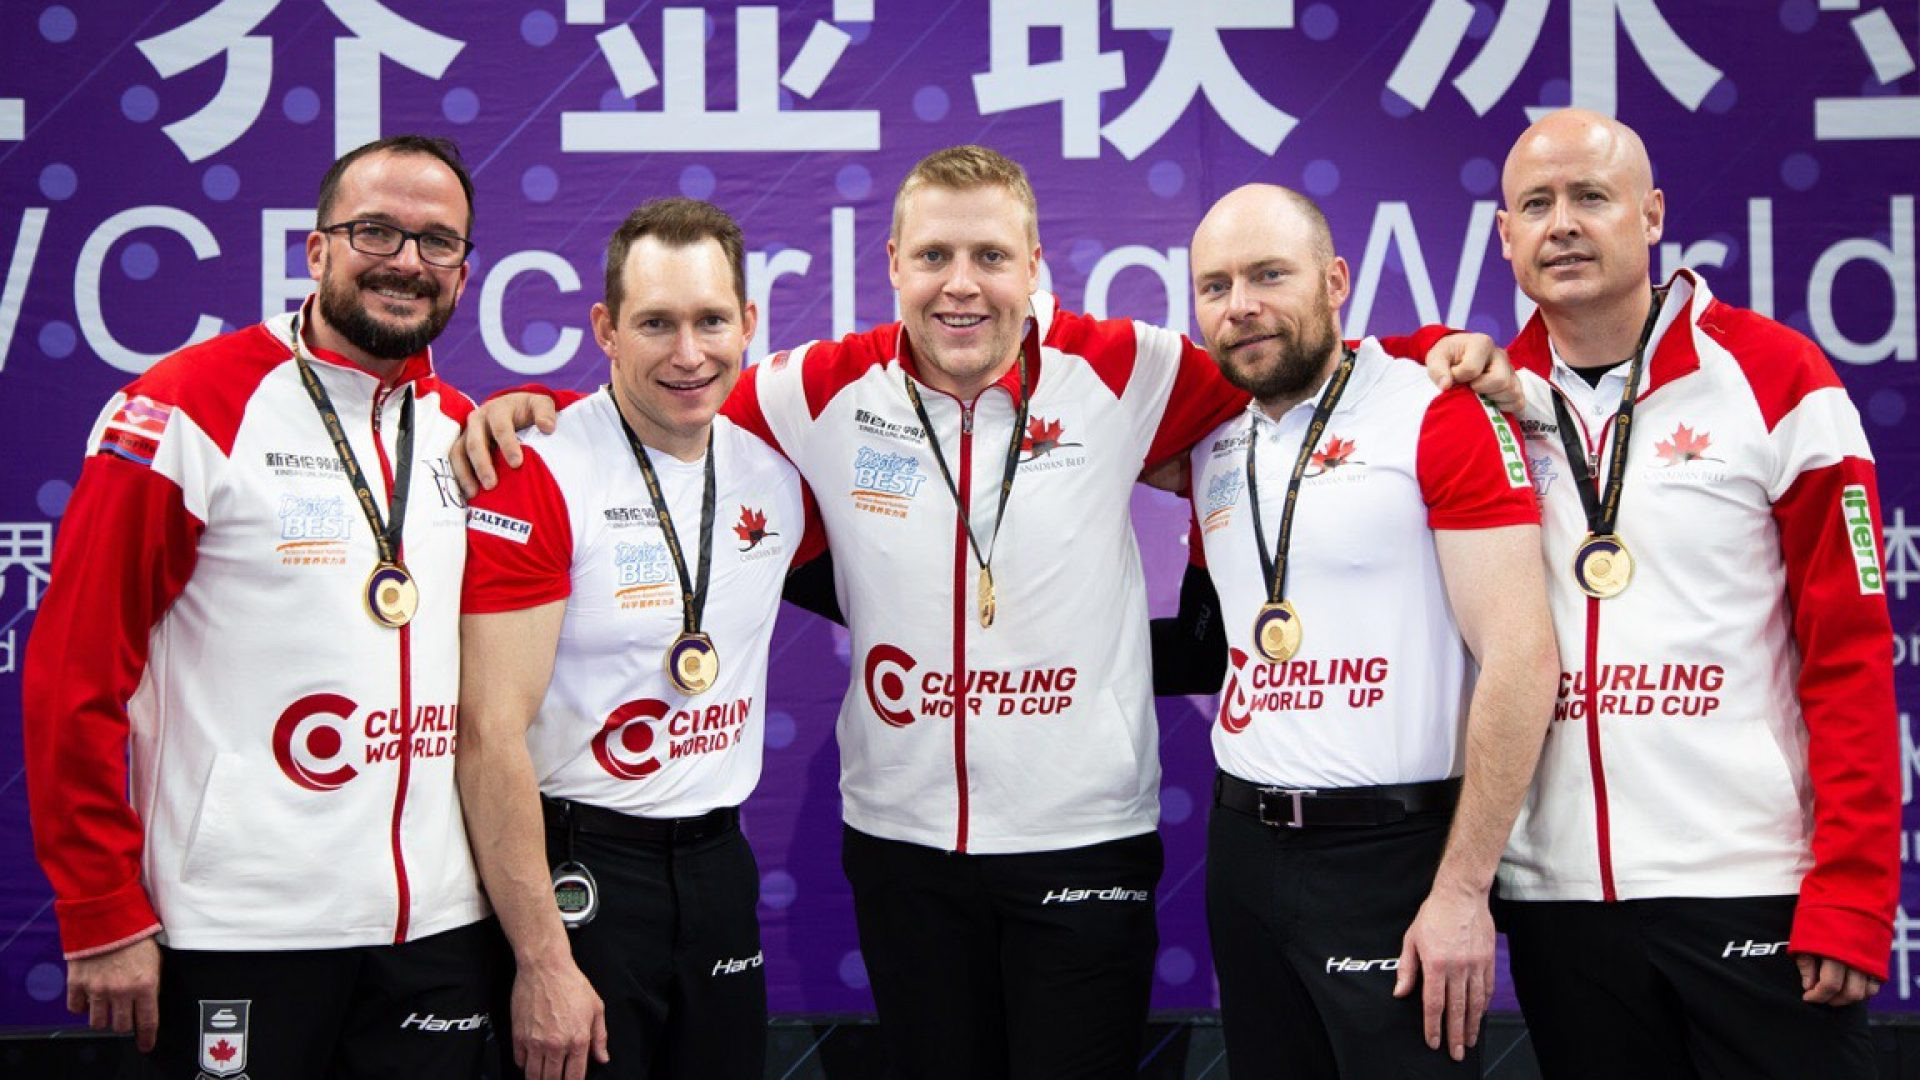 Canada's men and women triumph at inaugural Curling World Cup Grand Final